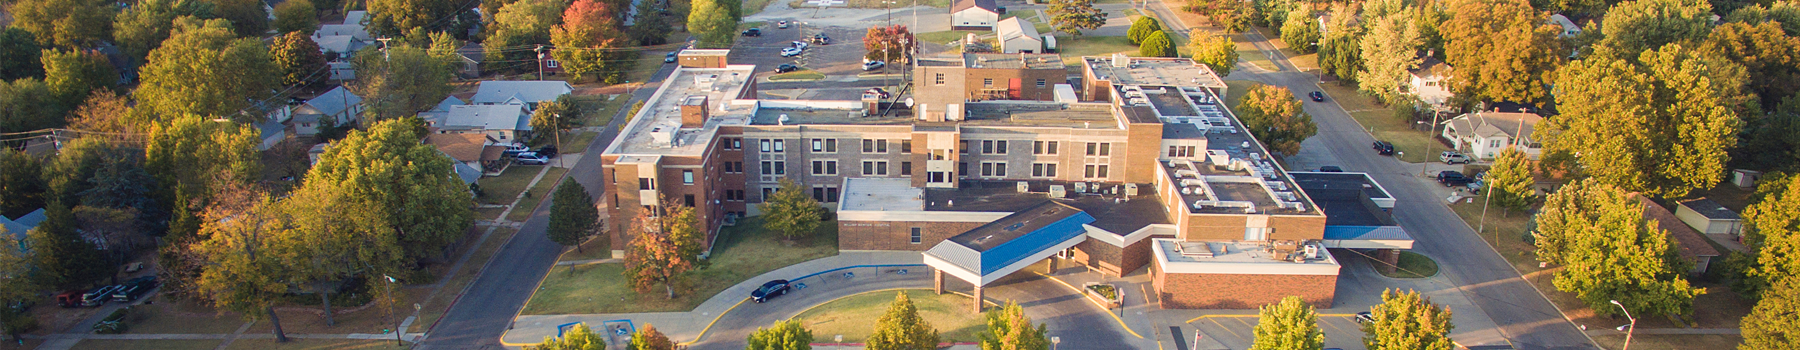 William Newton Hospital Aerial Skyler Livingston